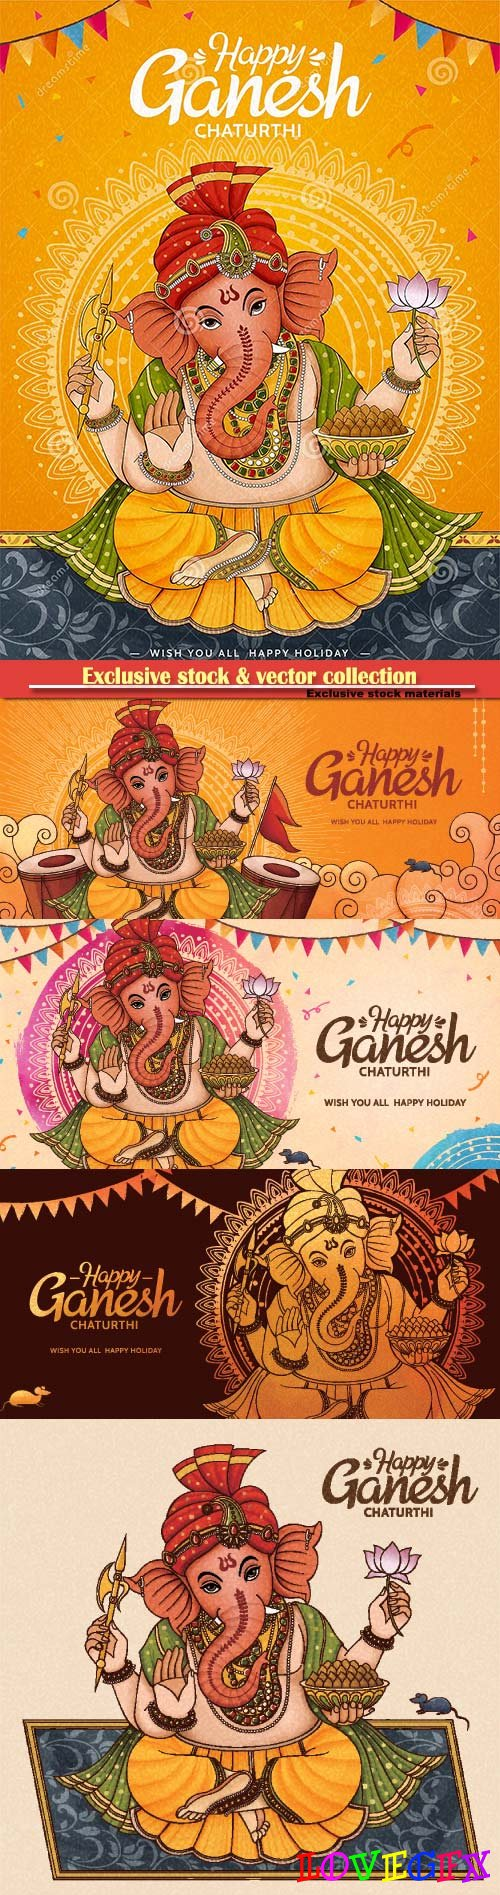 Happy Ganesh Chaturthi poster design